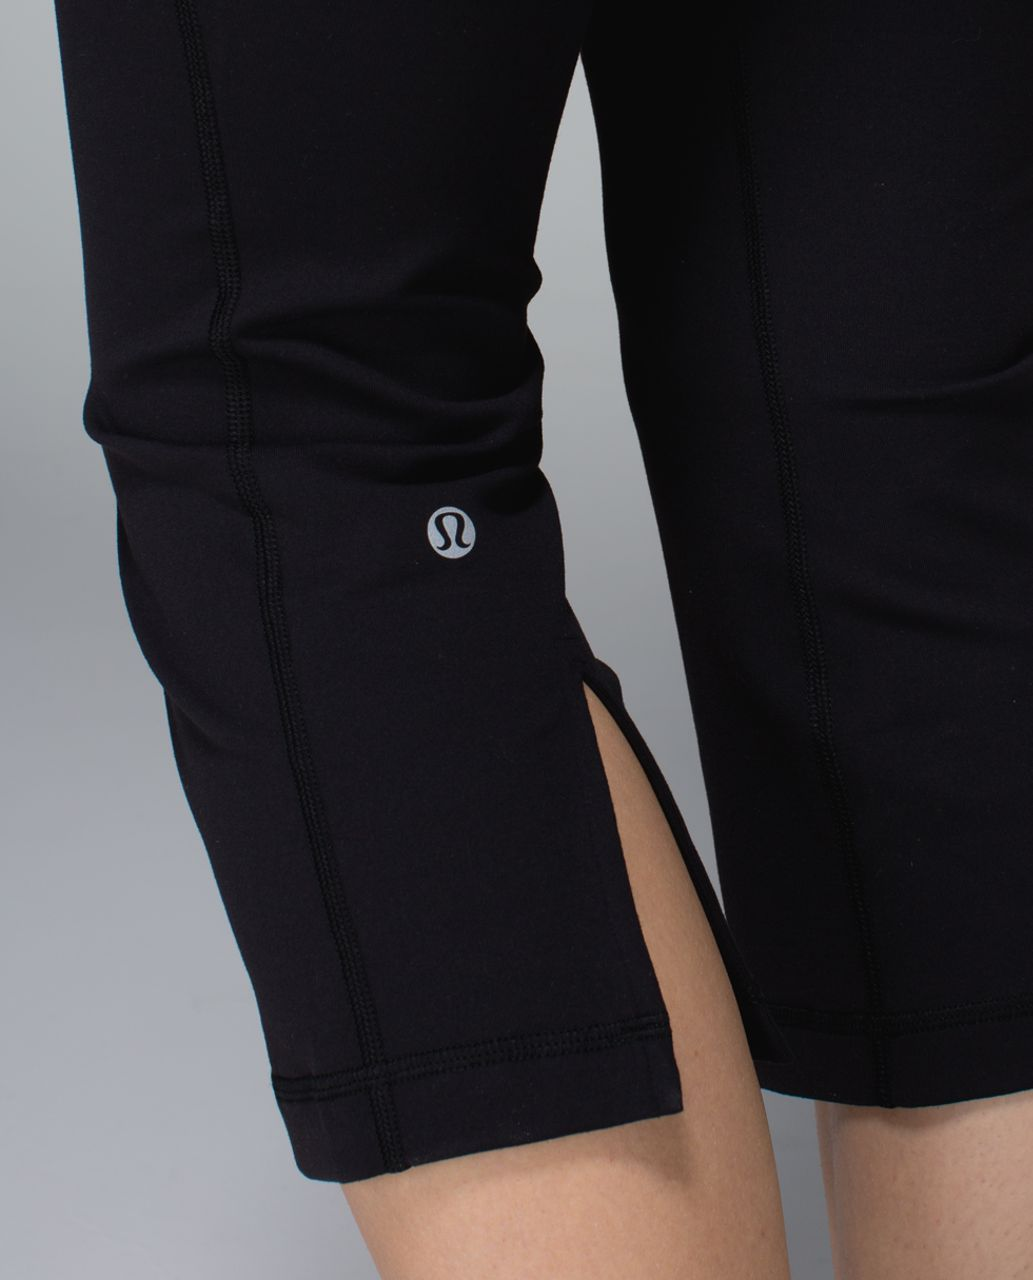 Lululemon Gather & Crow Crop *Full-On Luon - Black / Quilt Winter 13-06